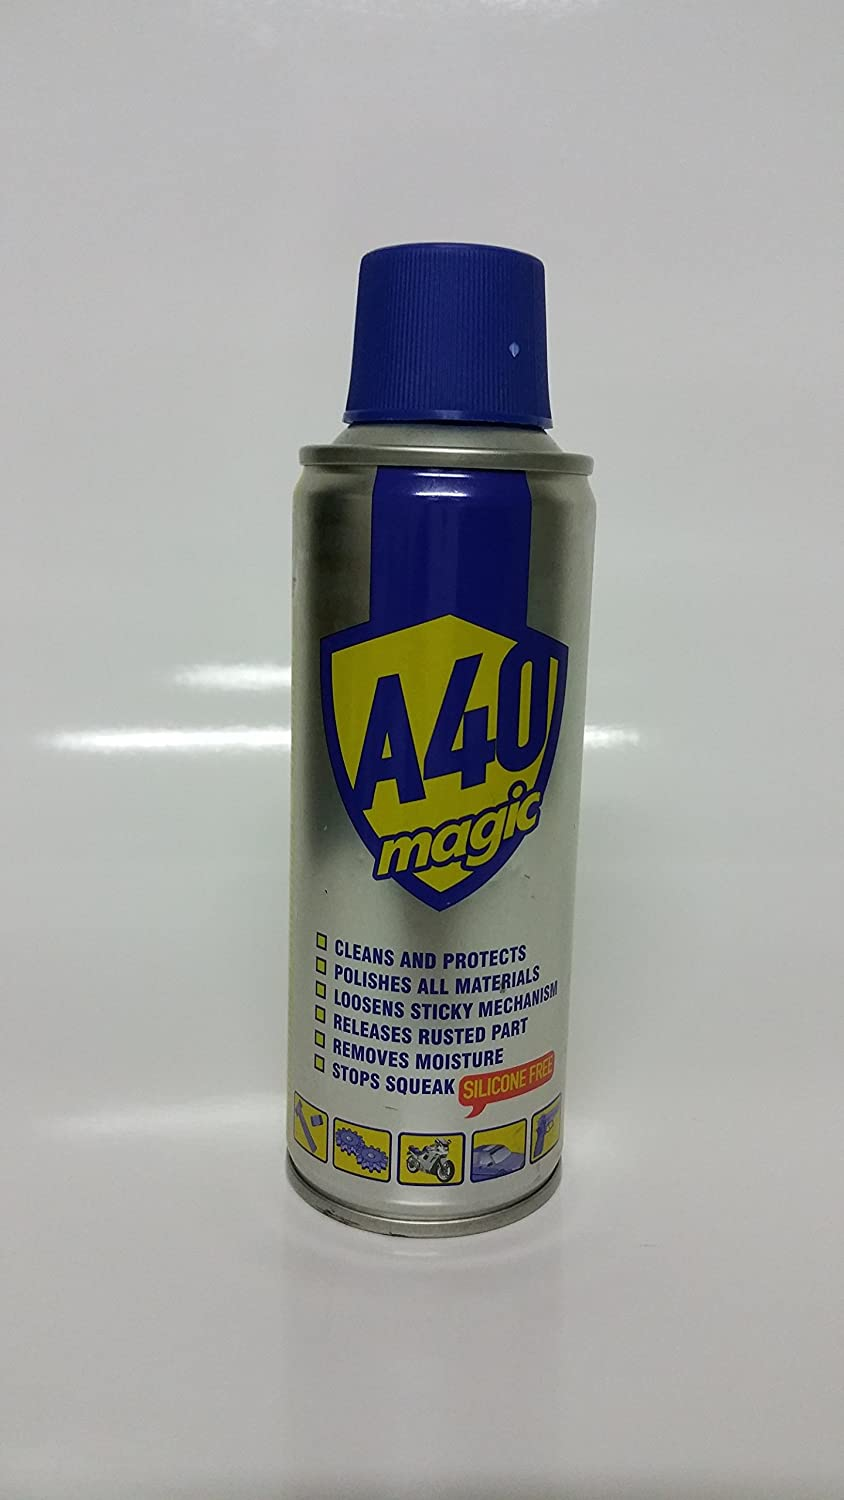 Akfix YA420 A40 Magic - Lubricante y quitamanchas multiusos (6,76 L) oz. Aerosol Can, 200 ml (Pack de 24): Amazon.es: Amazon.es